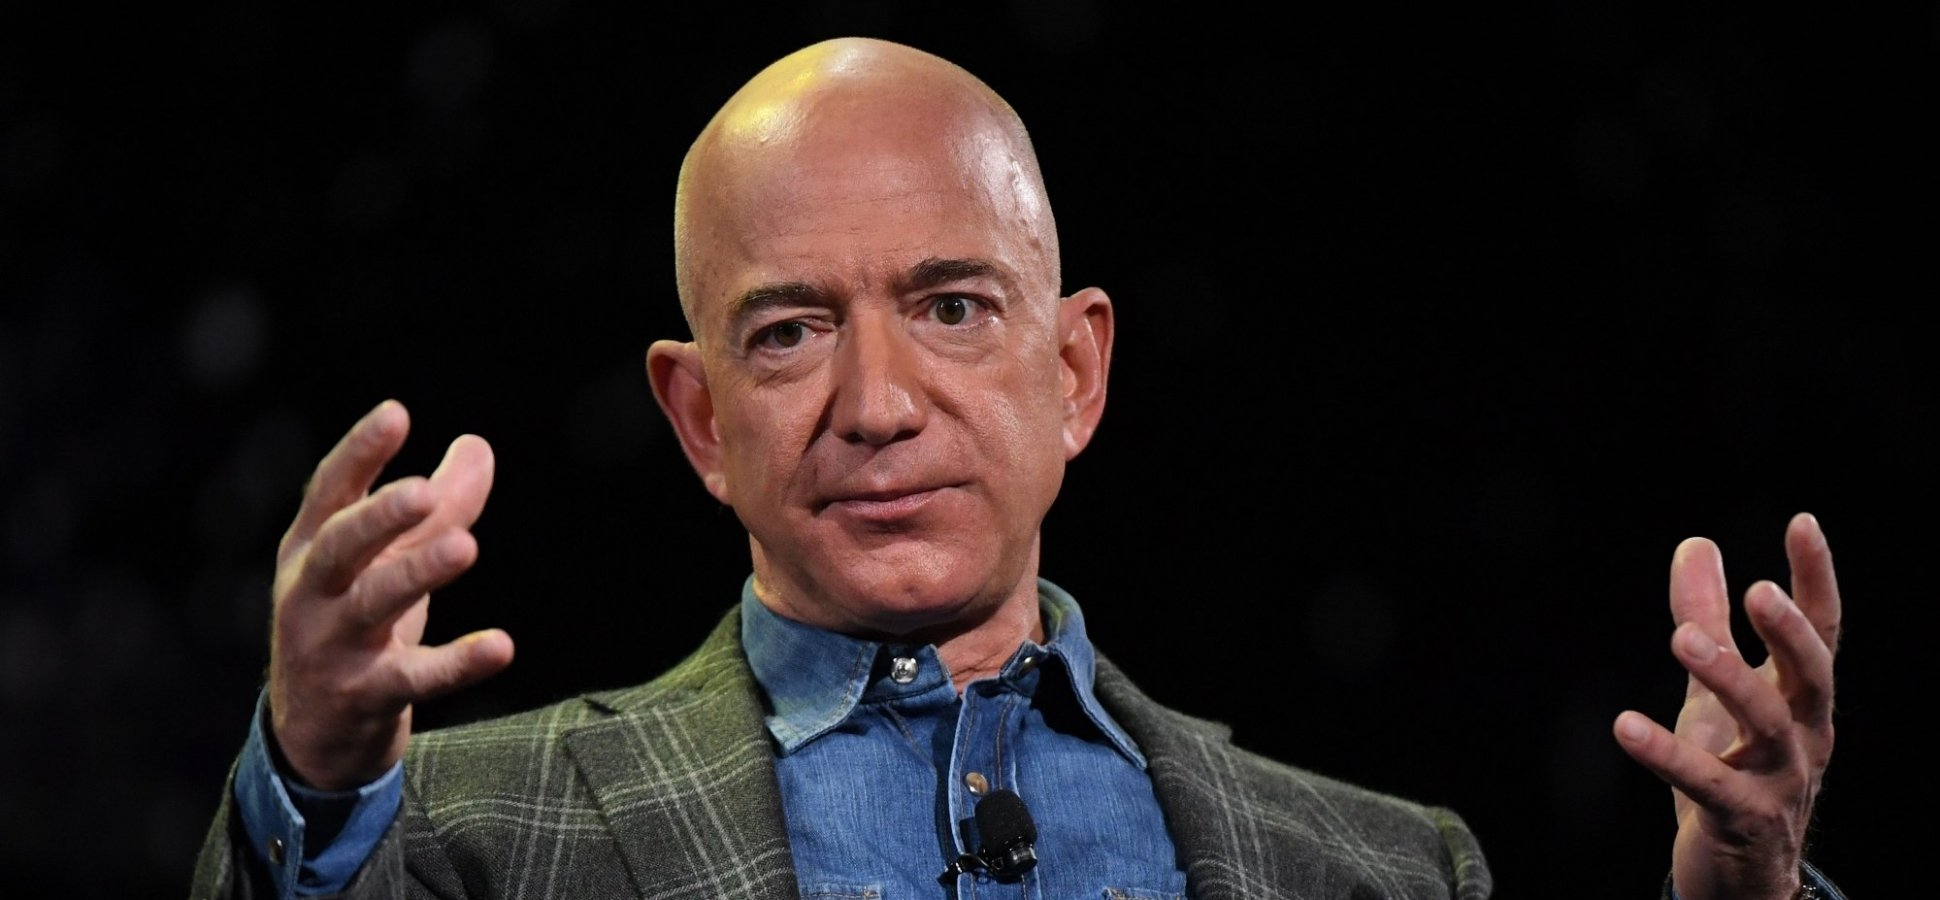 Amazon Just Got Some Really Bad News About Banned Products on Its Site. Its Response Says a Lot About the Company